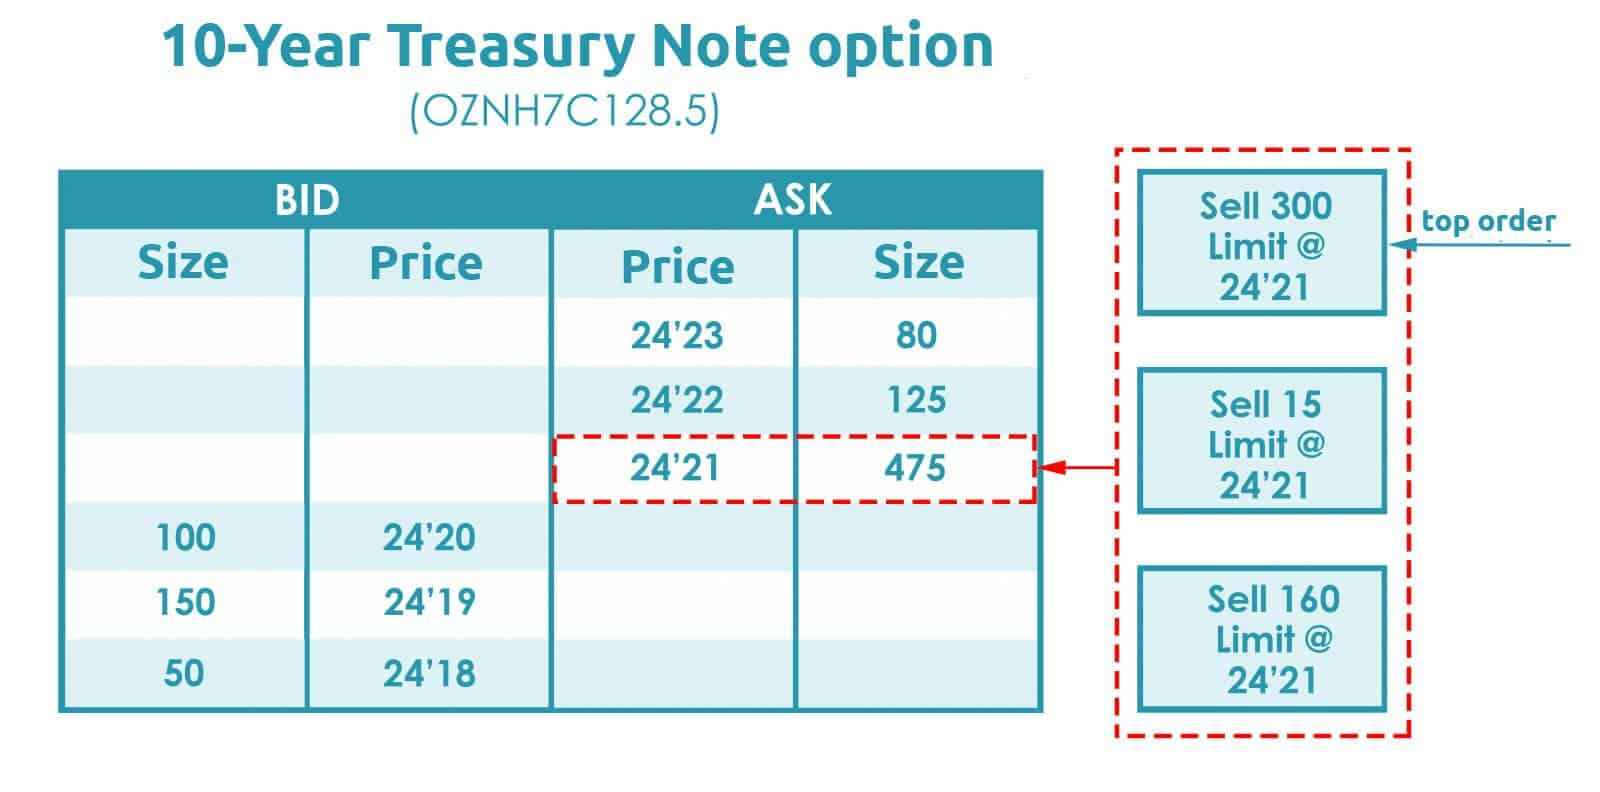 10-Year Treasury Note option (OZNH7C128.5)